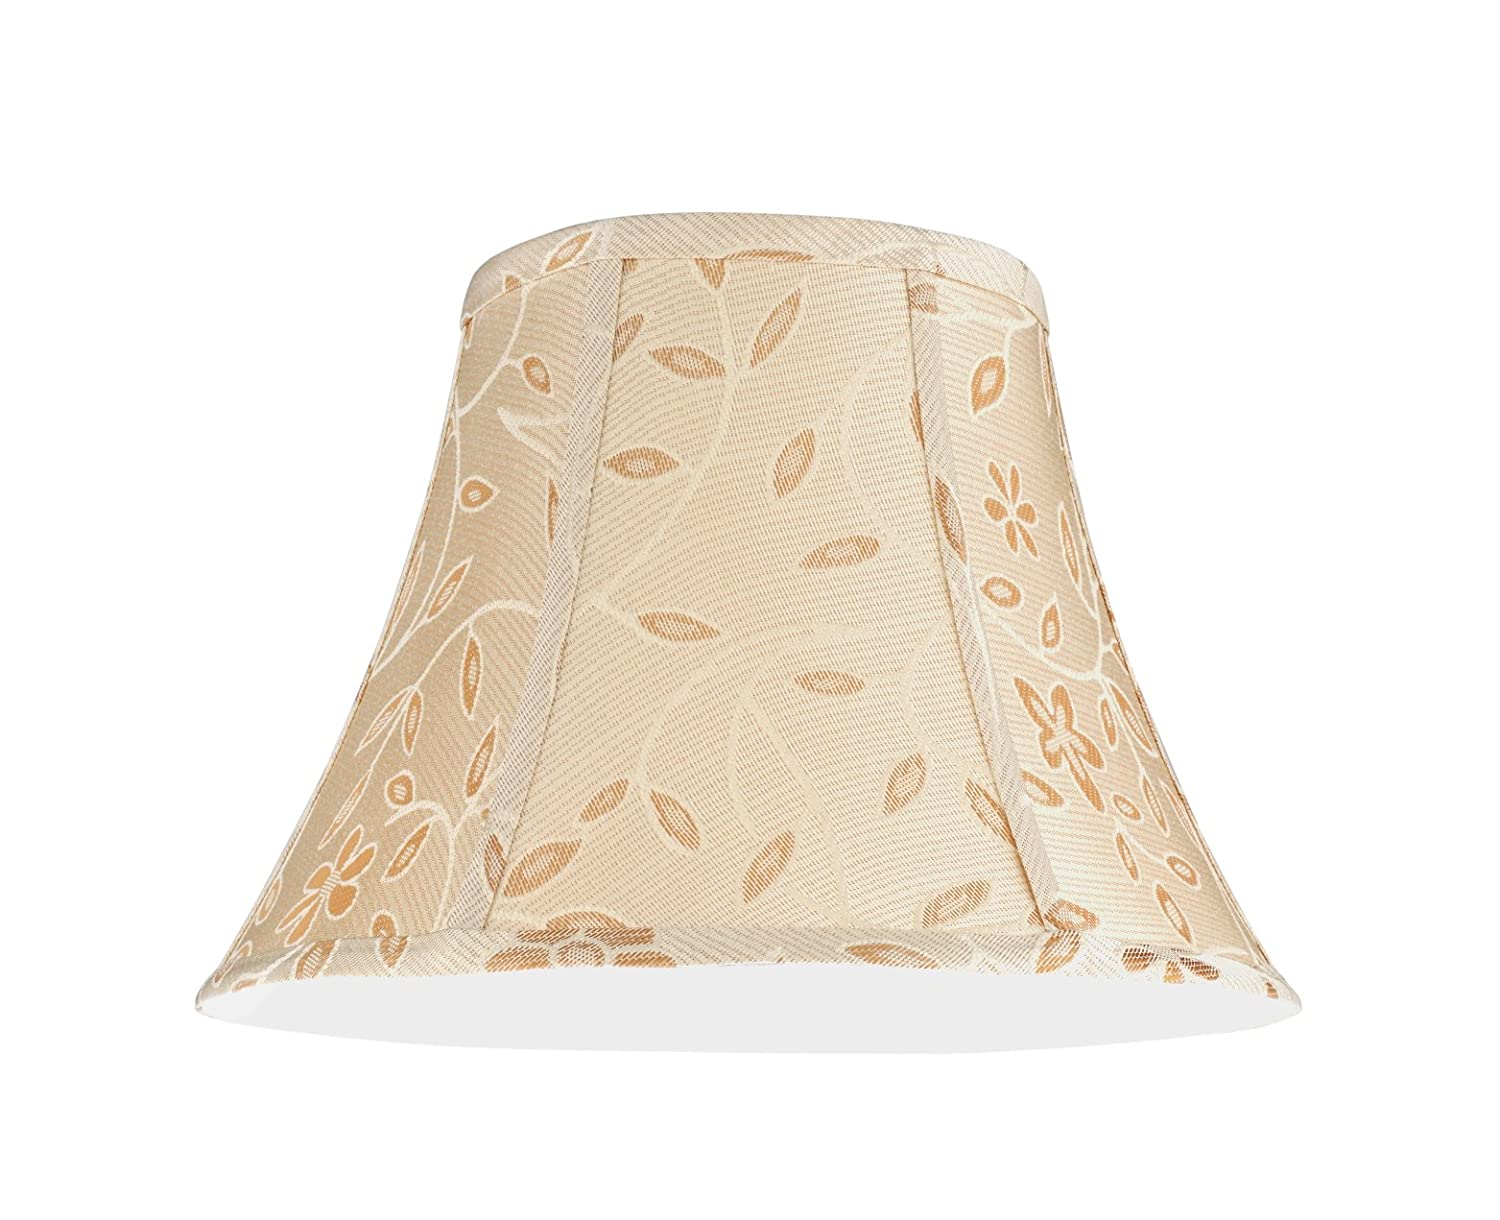 5a903b04421b Aspen Creative 30091 Transitional Bell Shape Spider Construction Lamp Shade  in Gold, 13